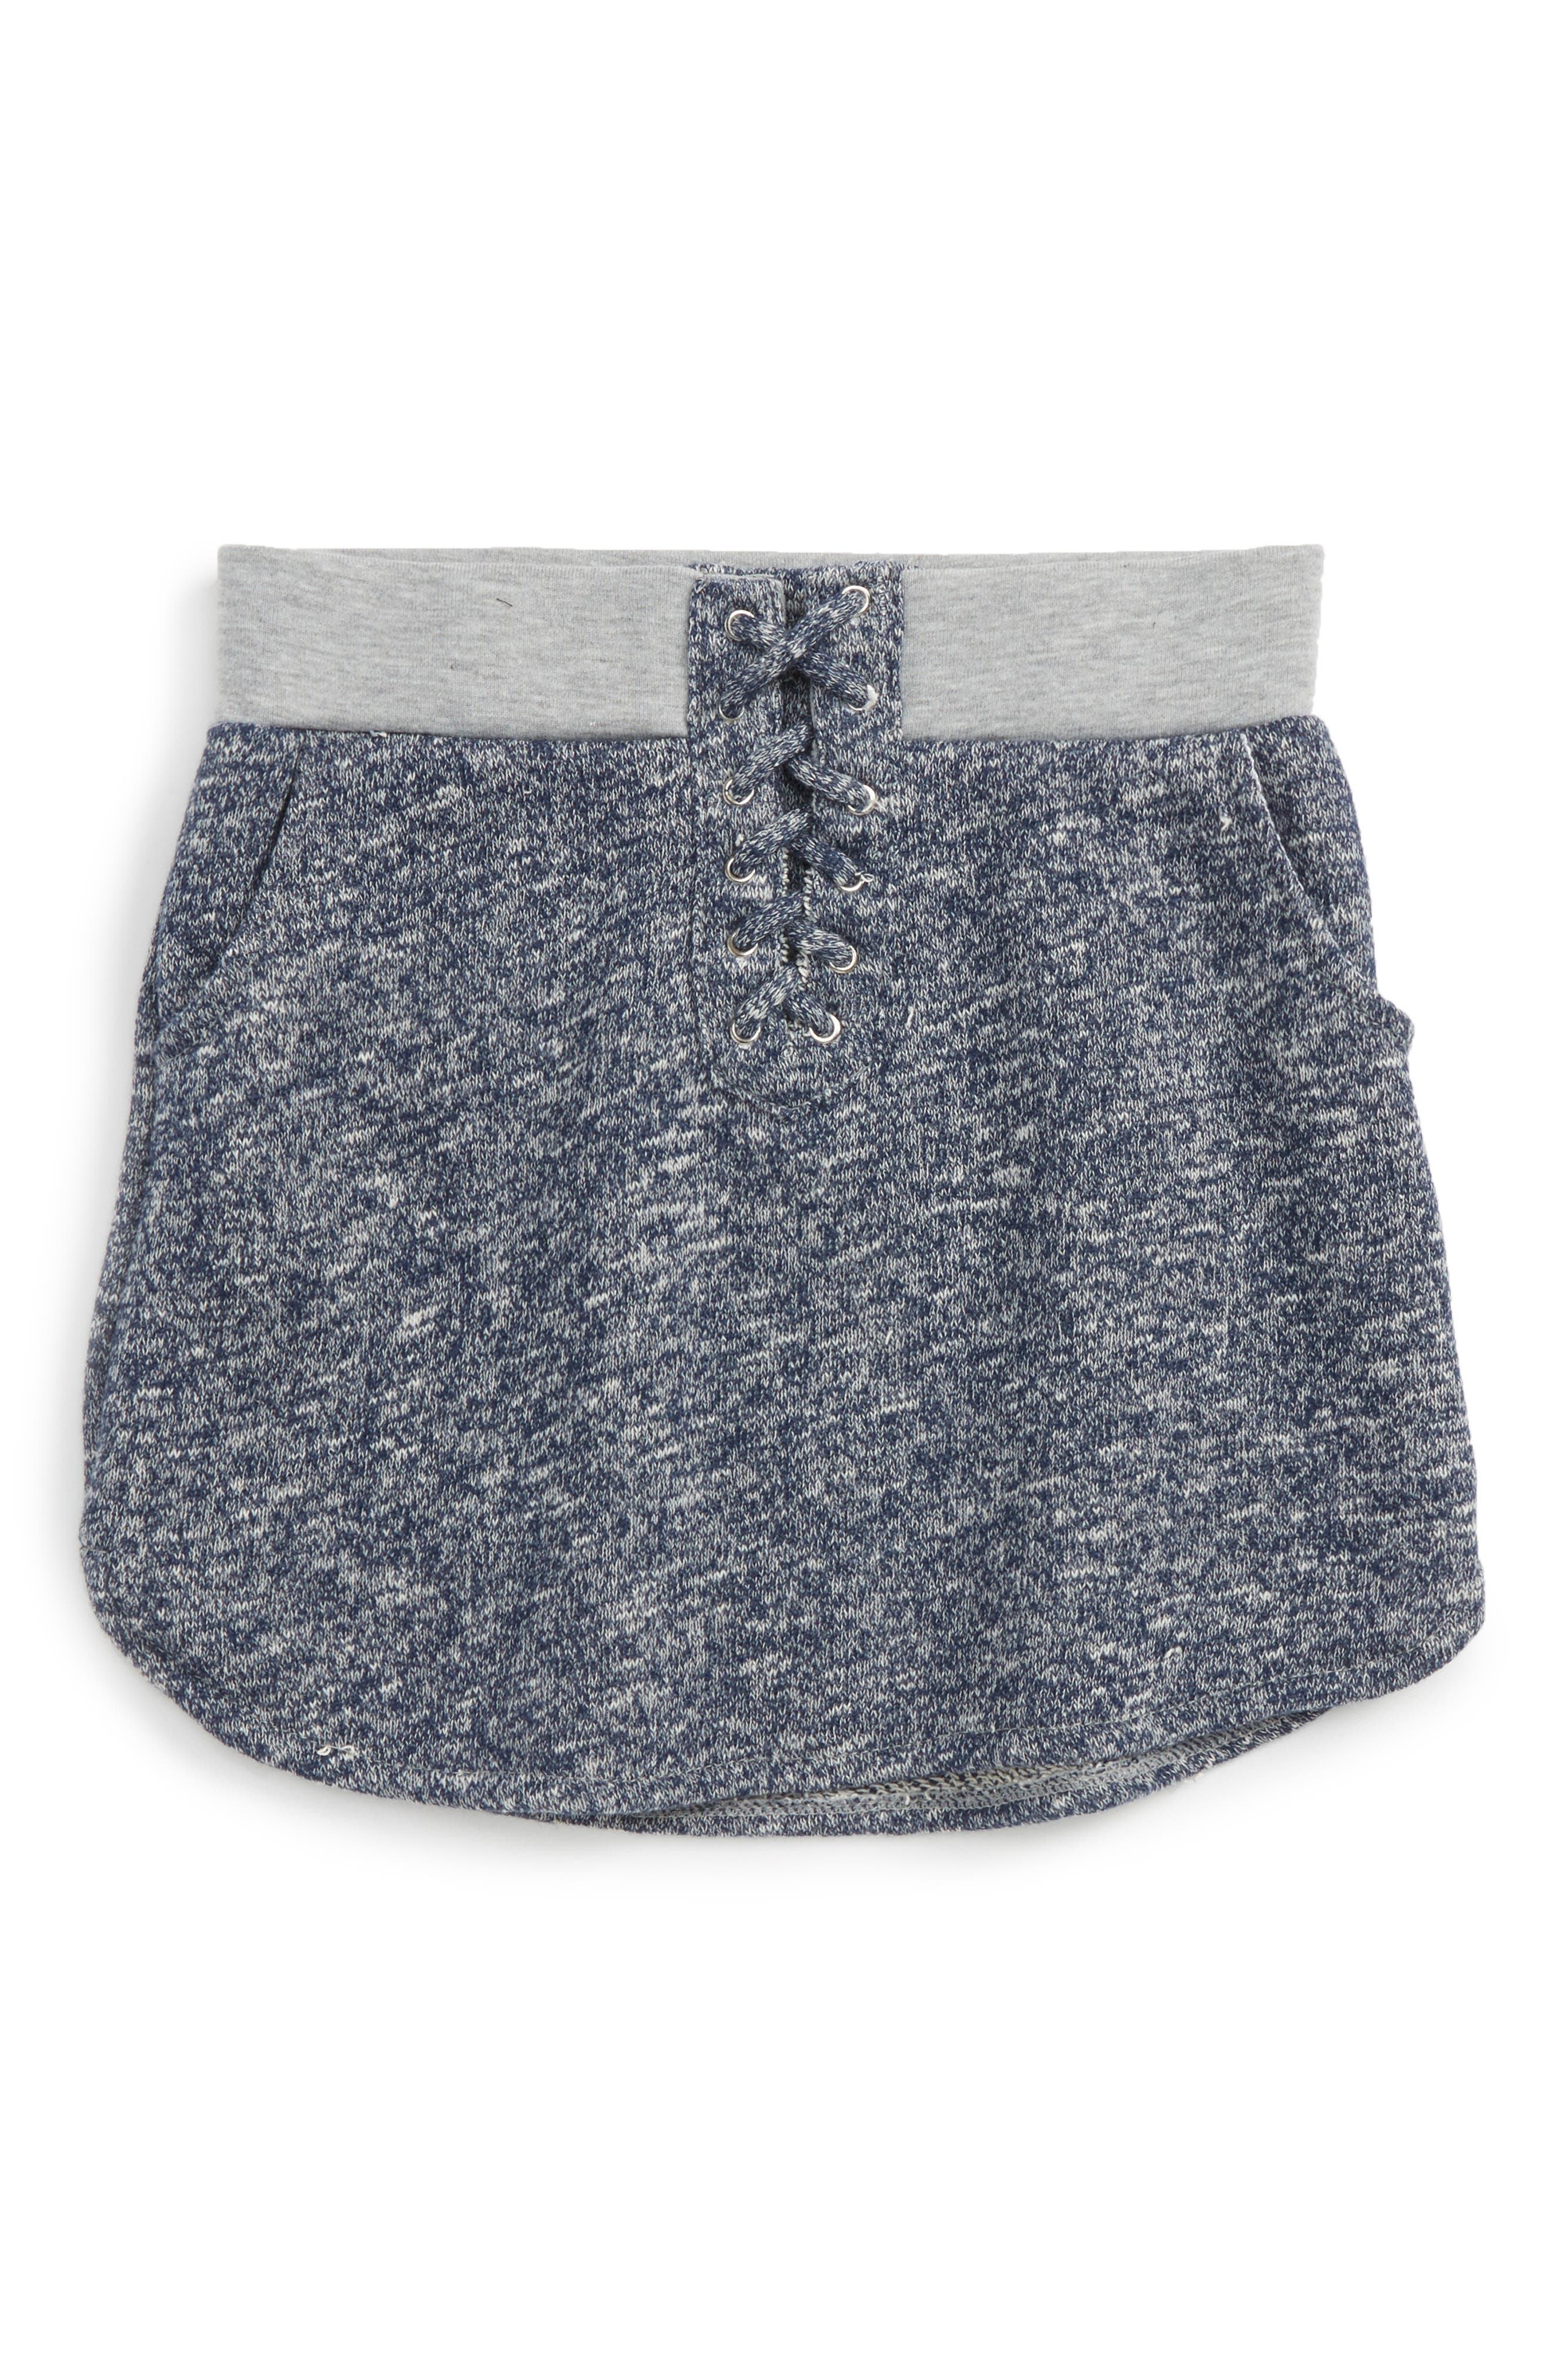 Lace-Up Skirt,                             Main thumbnail 1, color,                             Grey